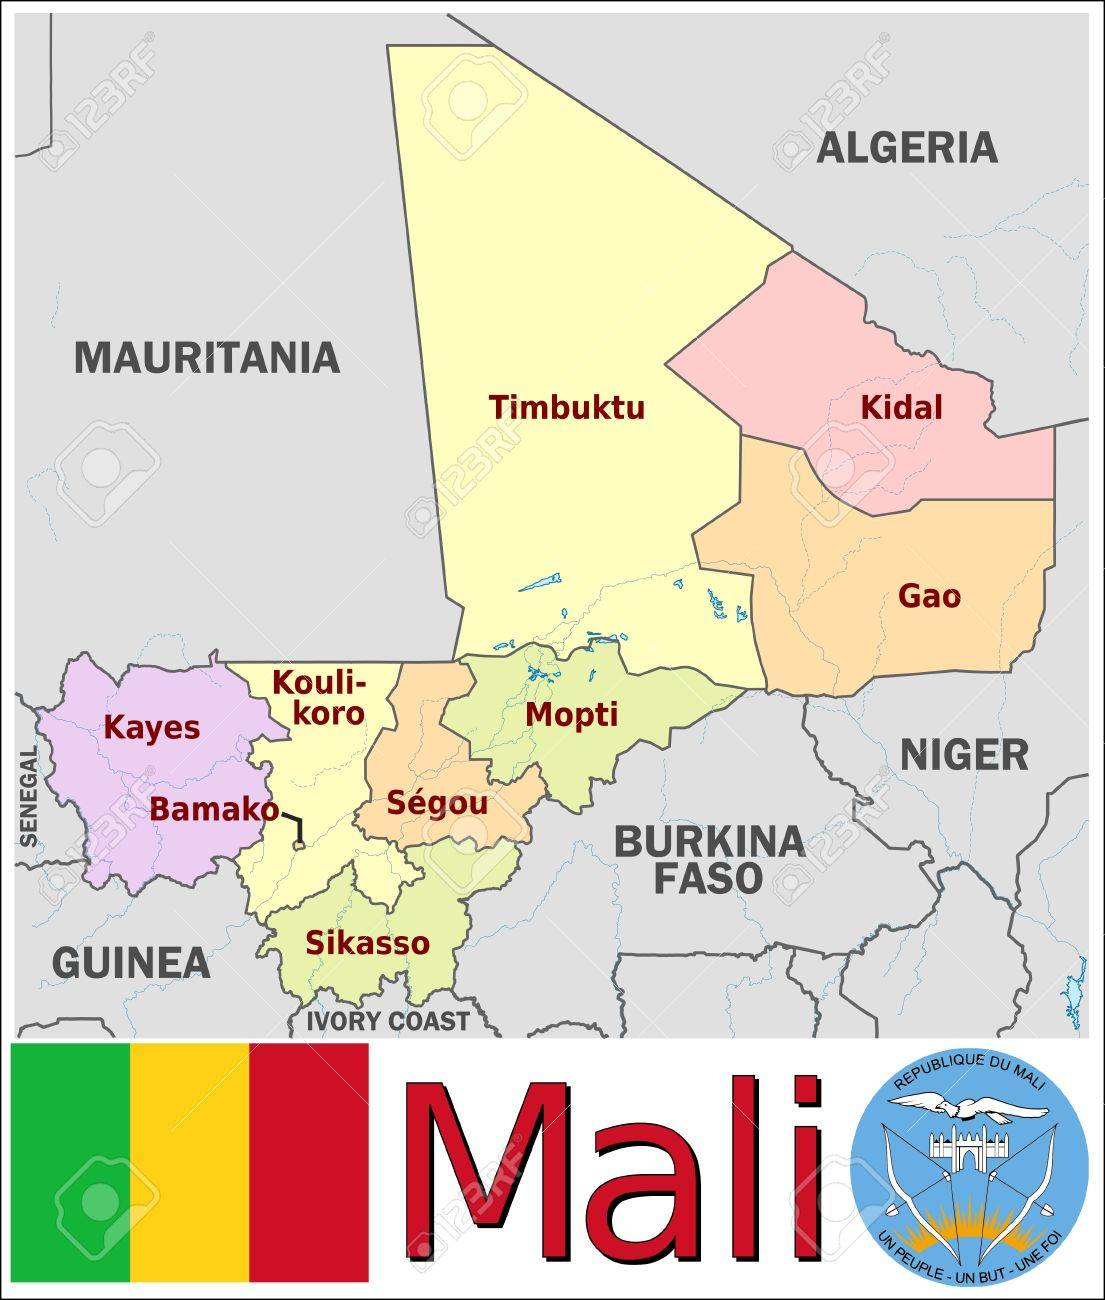 Mali Administrative Divisions Royalty Free Cliparts Vectors And